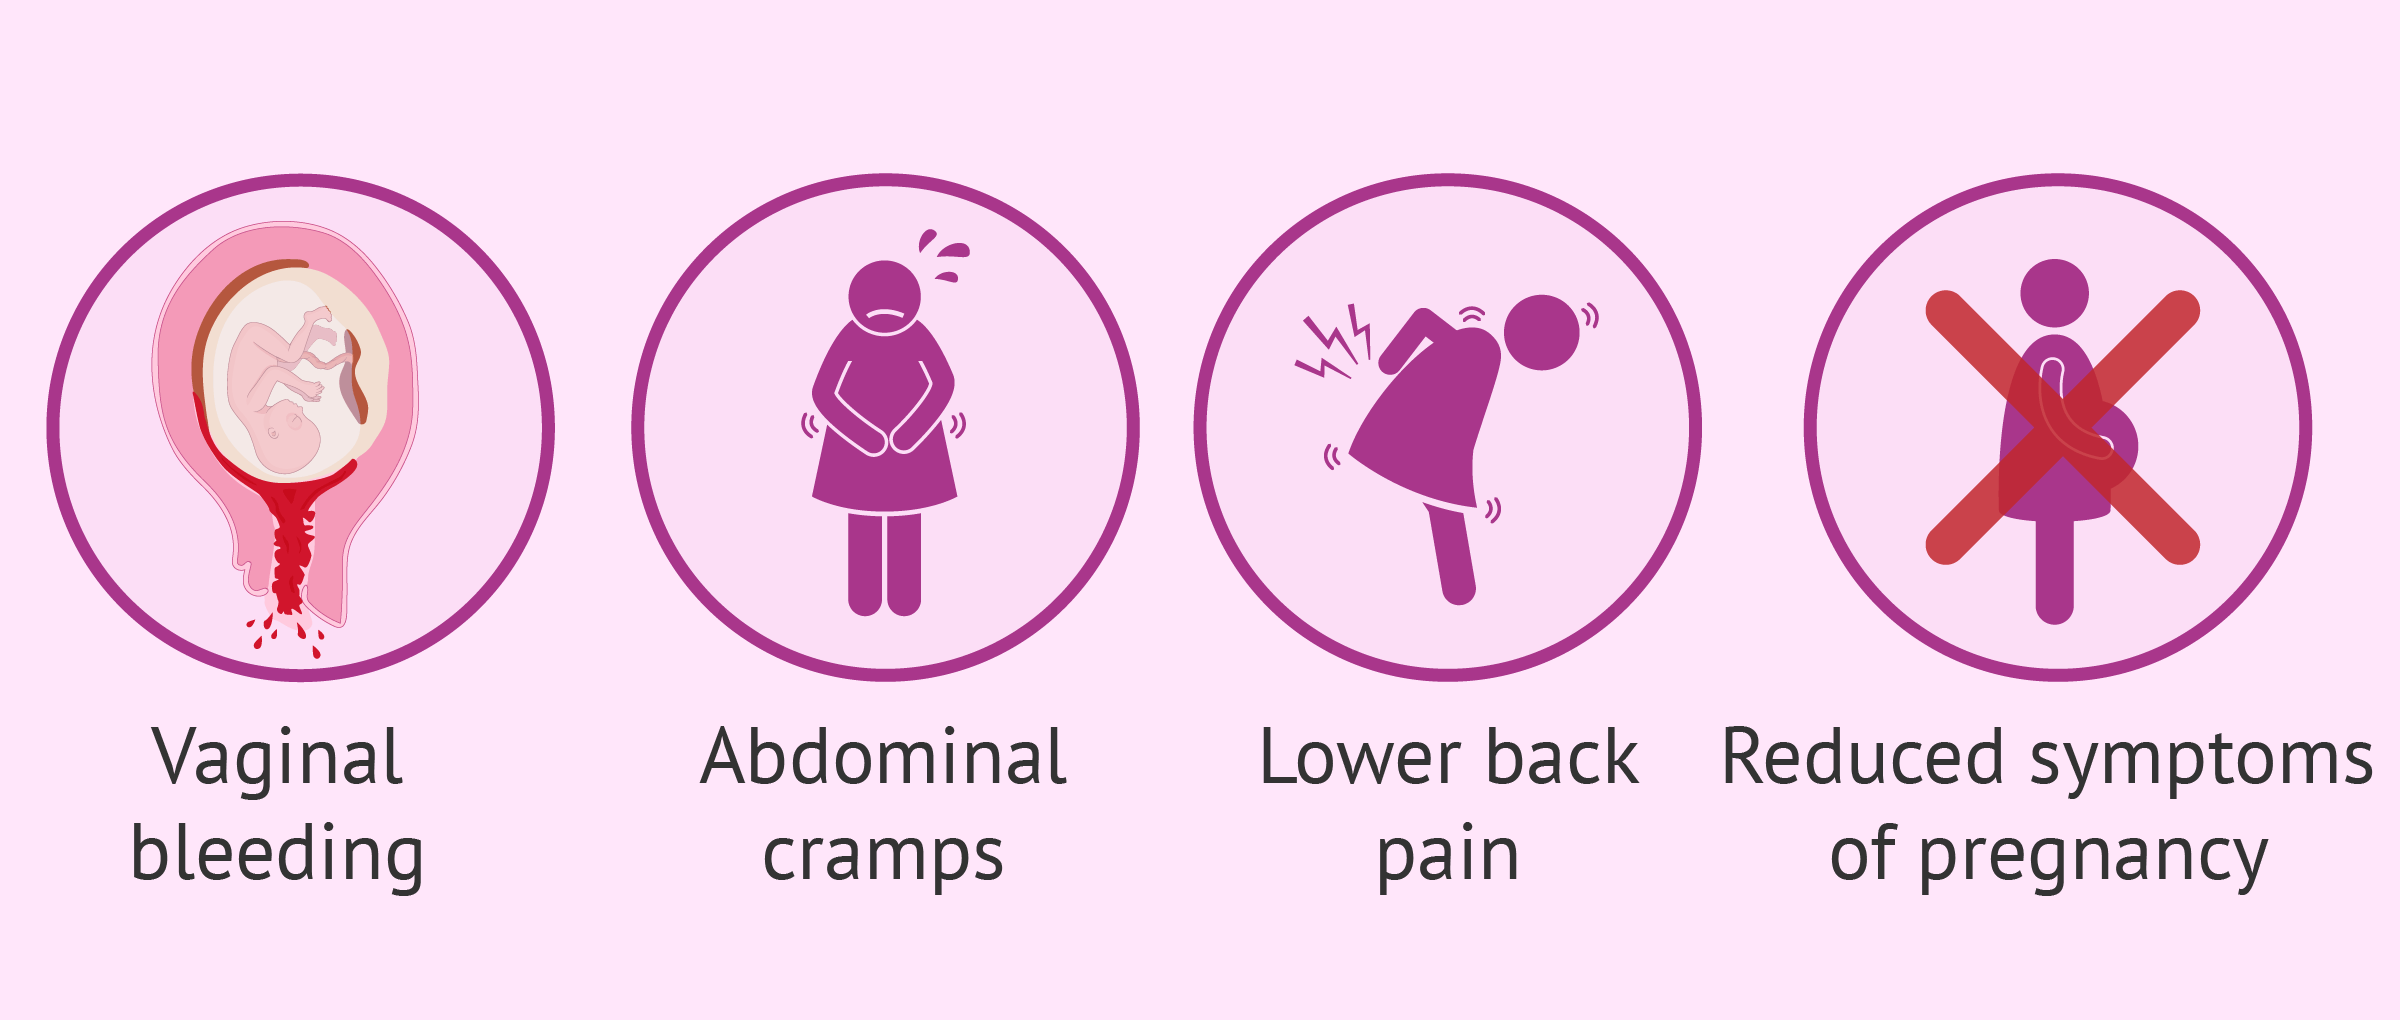 Symptoms of threatened miscarriage